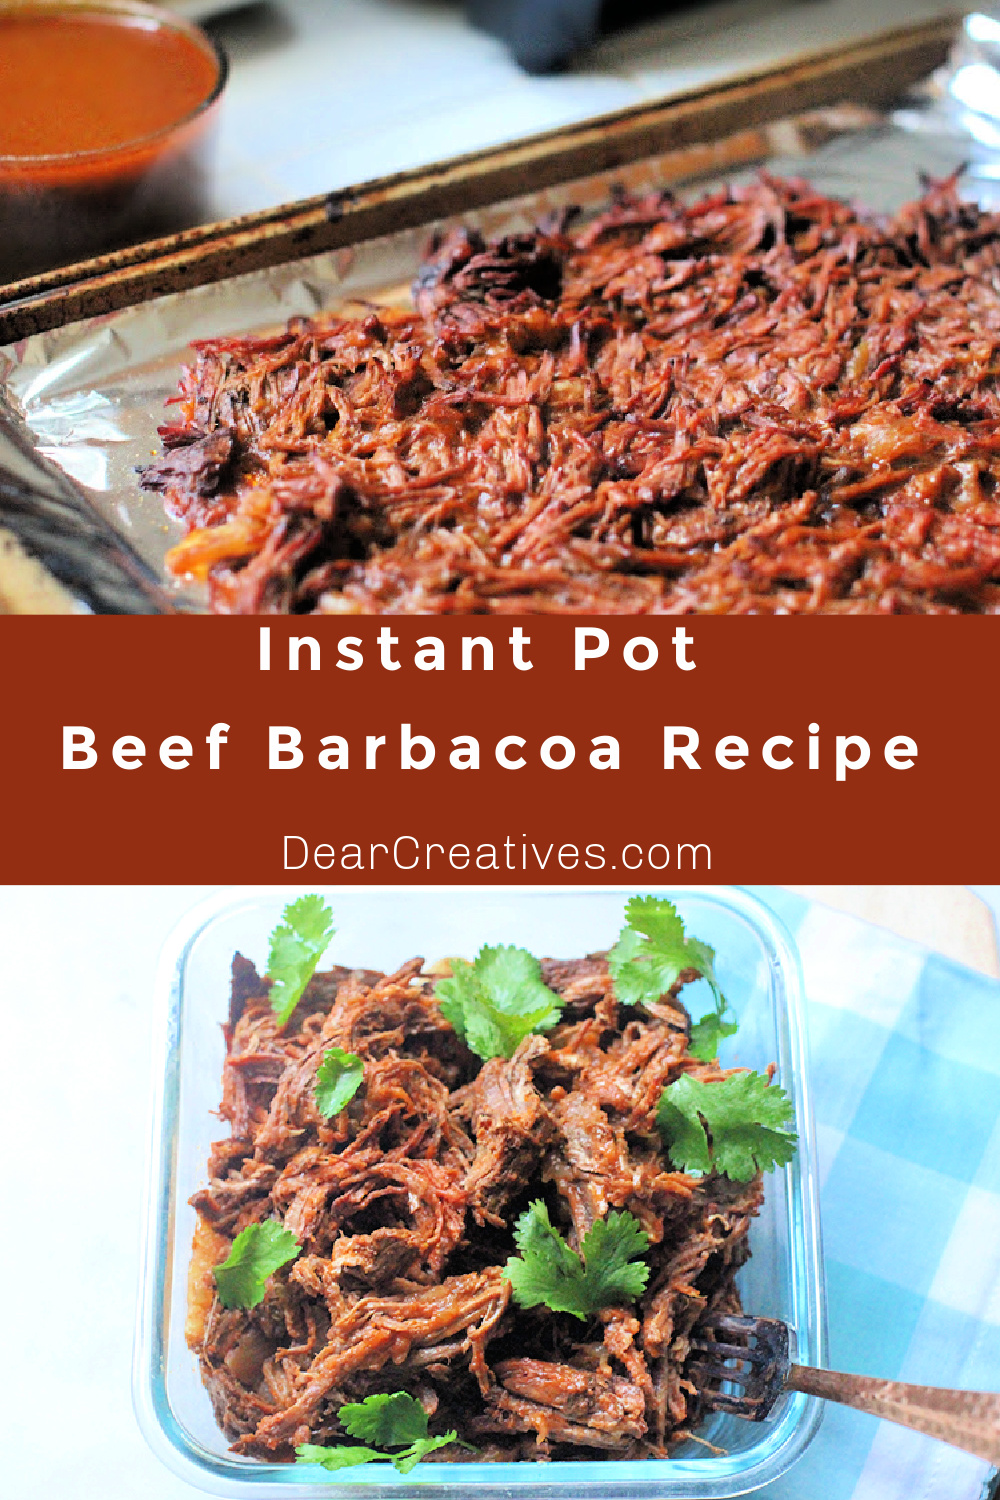 Beef Barbacoa Recipe (Instant Pot)